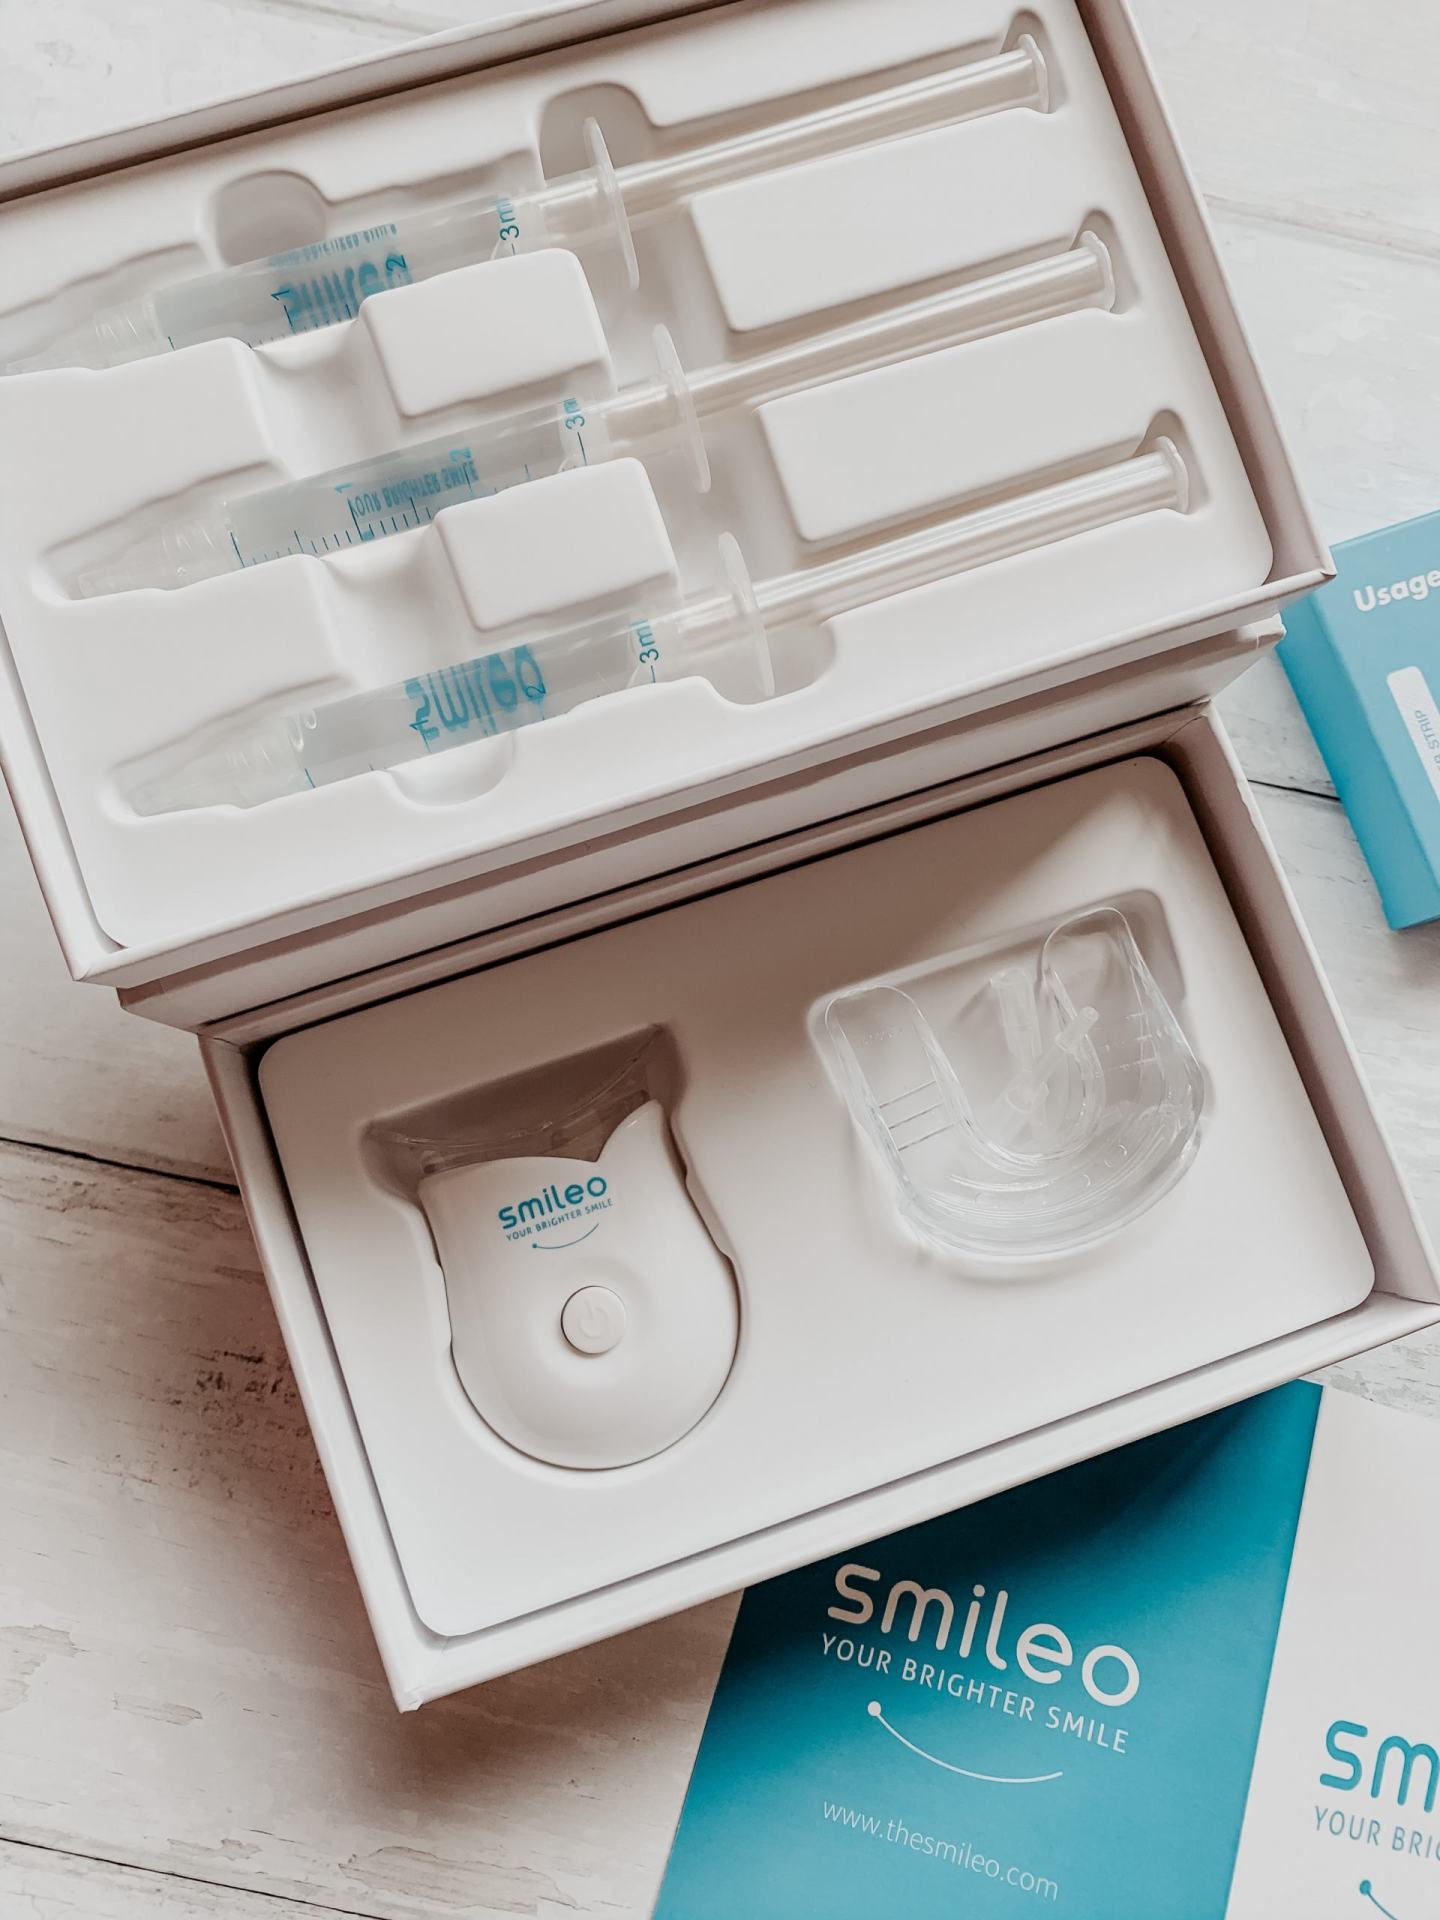 smileo-teeth-whitening-kit-www.stylinglifetoday.com